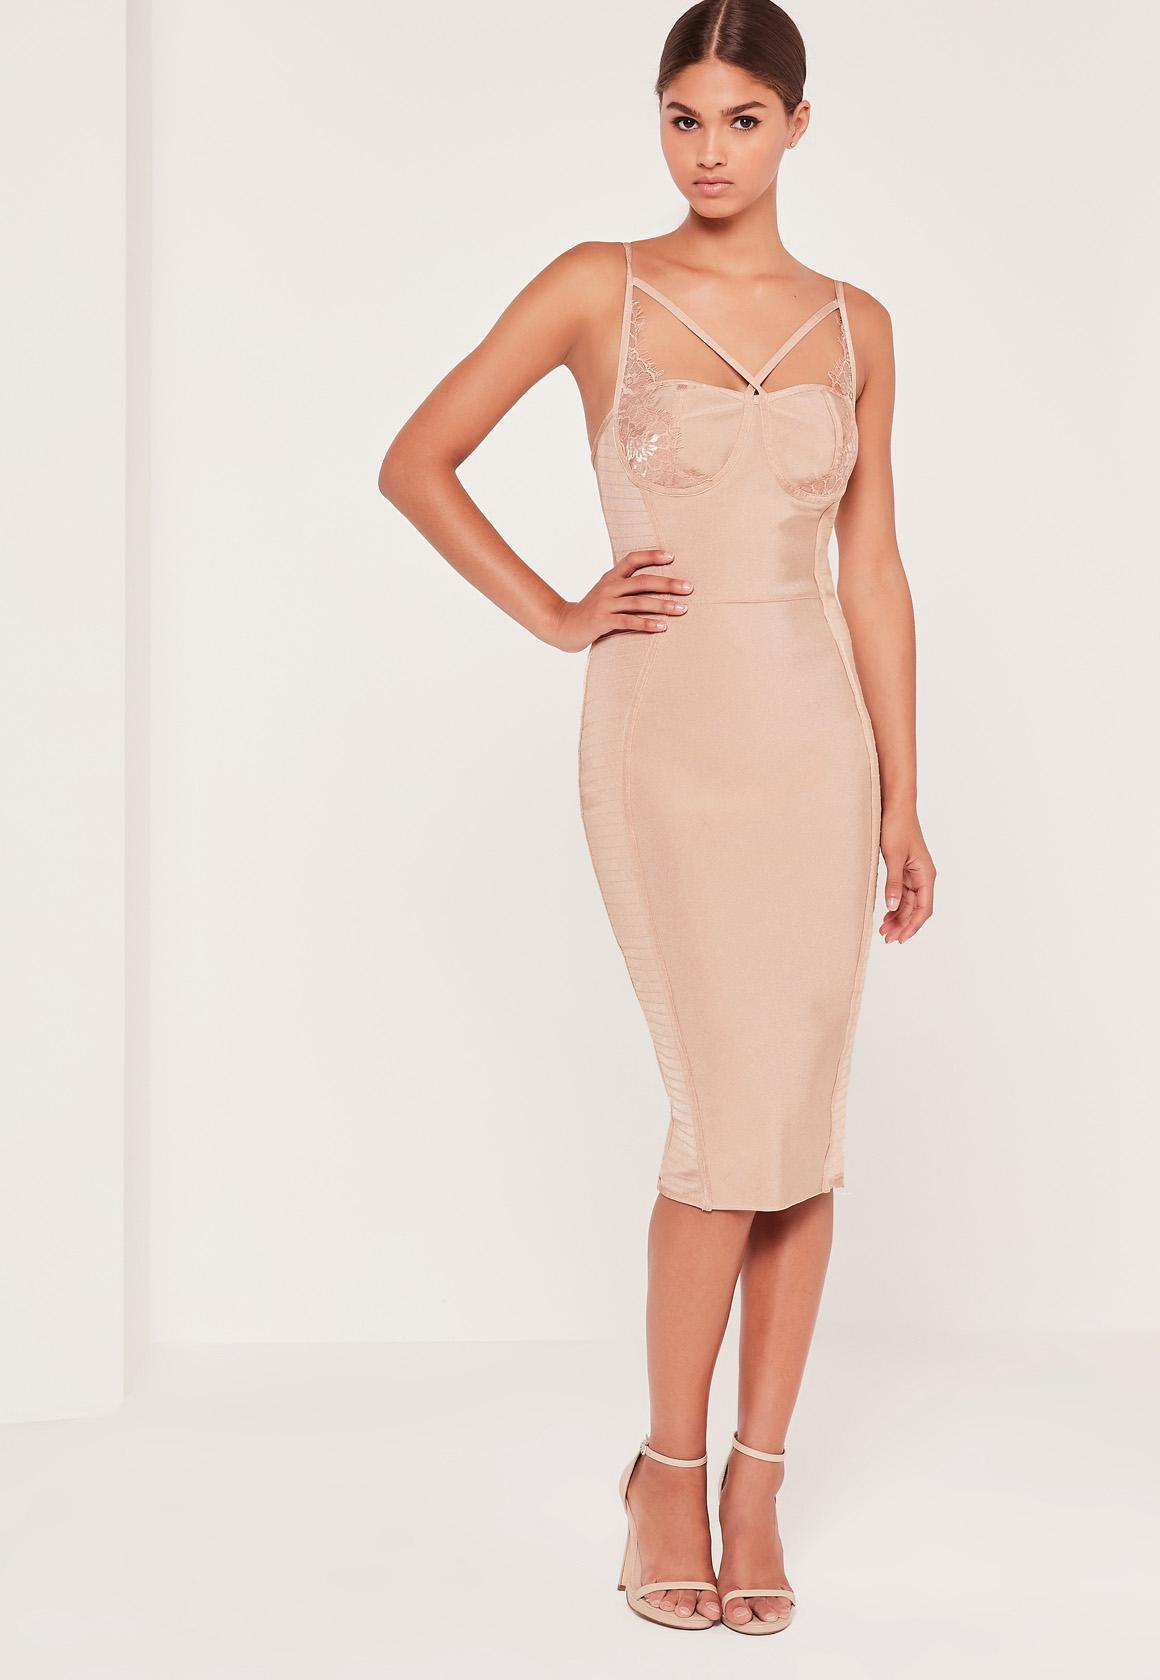 Premium Bandage Lace Trim Bust Cup Midi Dress Nude